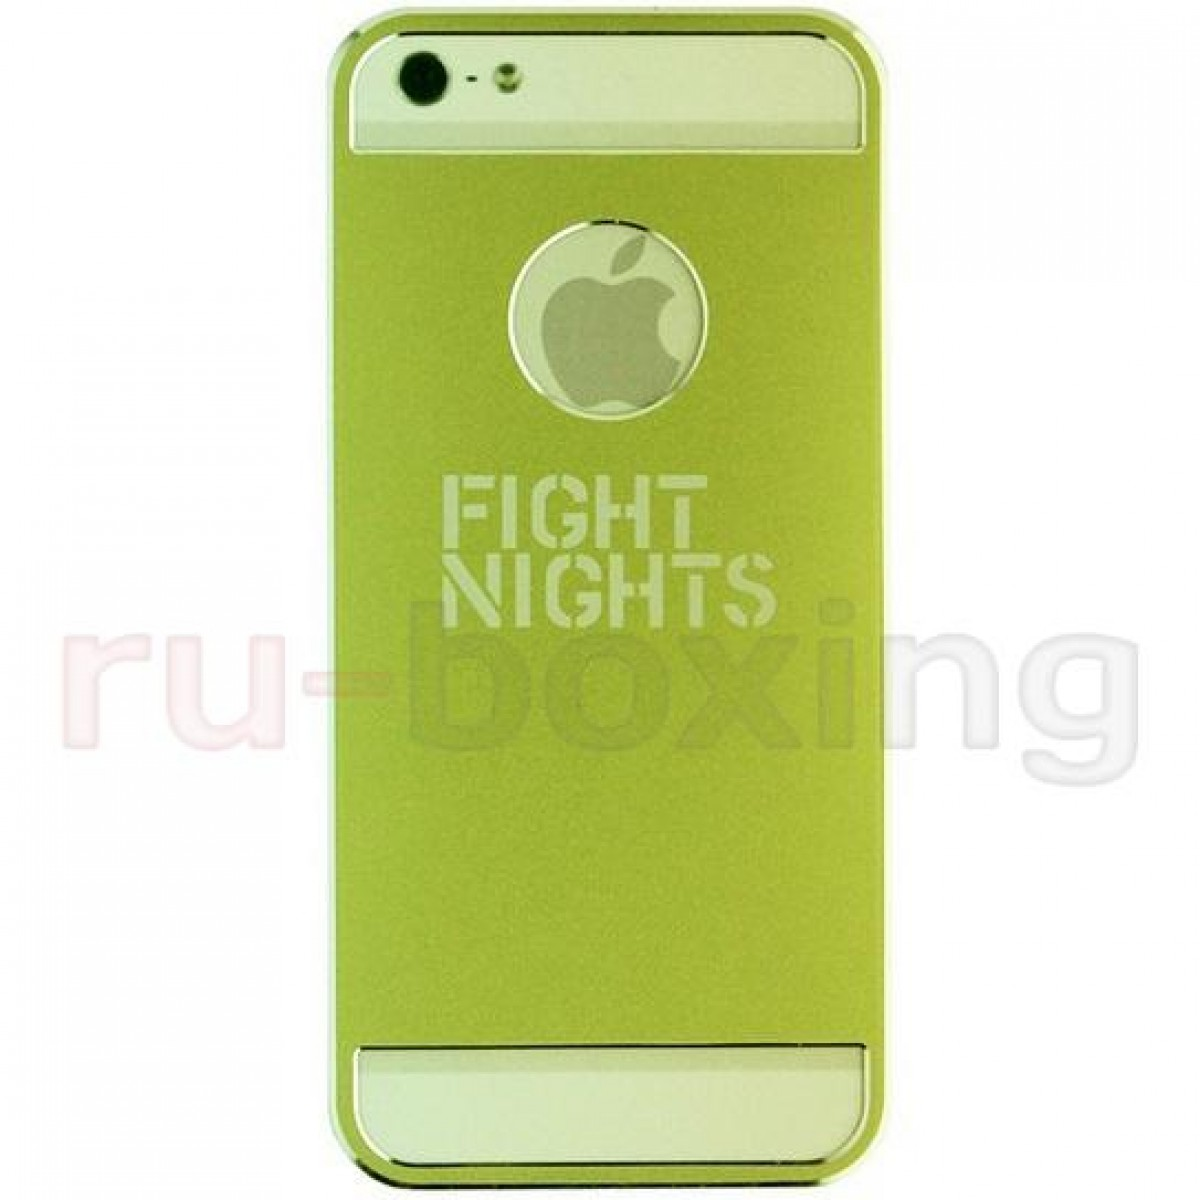 Чехол для iphone 5  Fight Nights салатовый